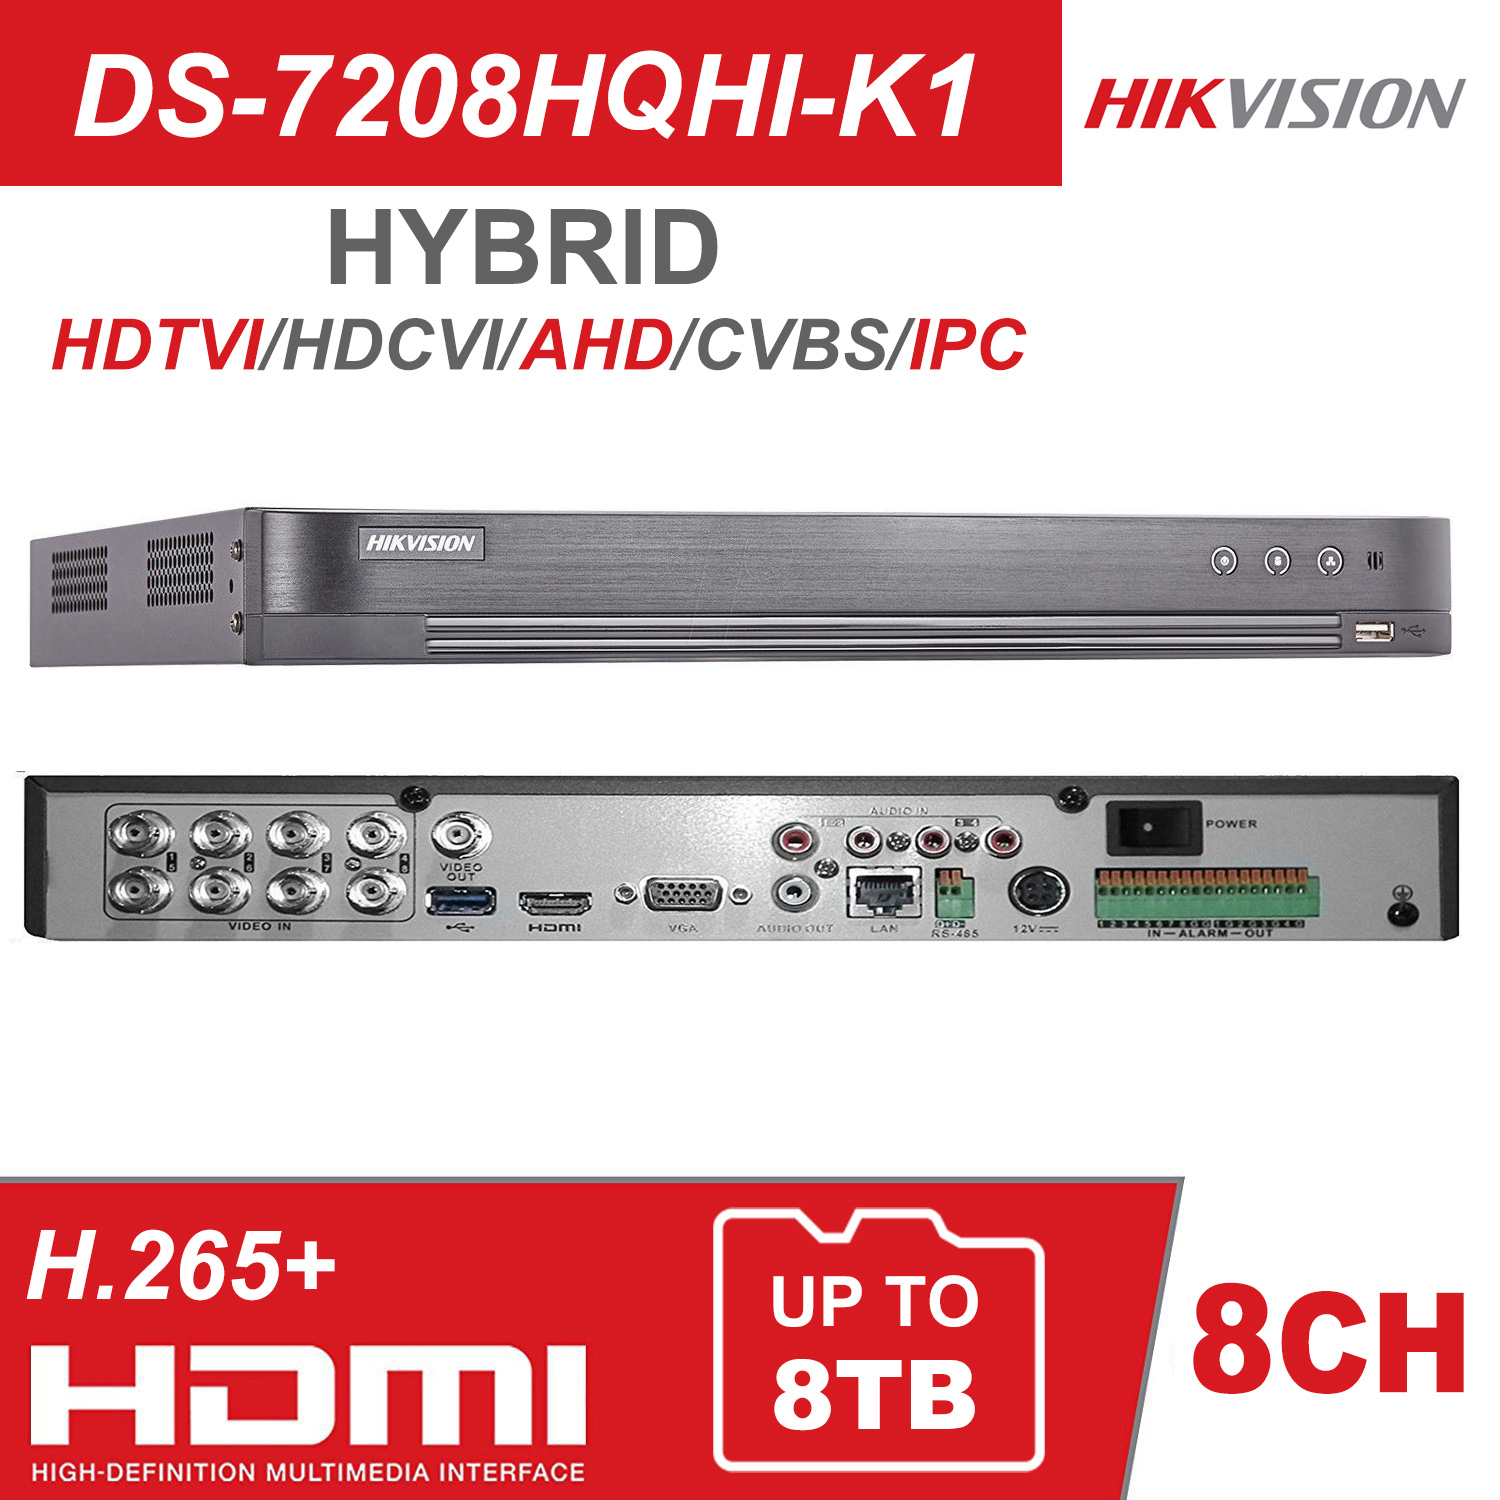 Hikvision Hybrid 4/8/16CH DVR DS-7204/08/16HQHI-K1 5 IN 1(HDTVI/AHD/CVI/CVBS/IP) H.265 Pro+ Digital Video Recorder 1HDD Support